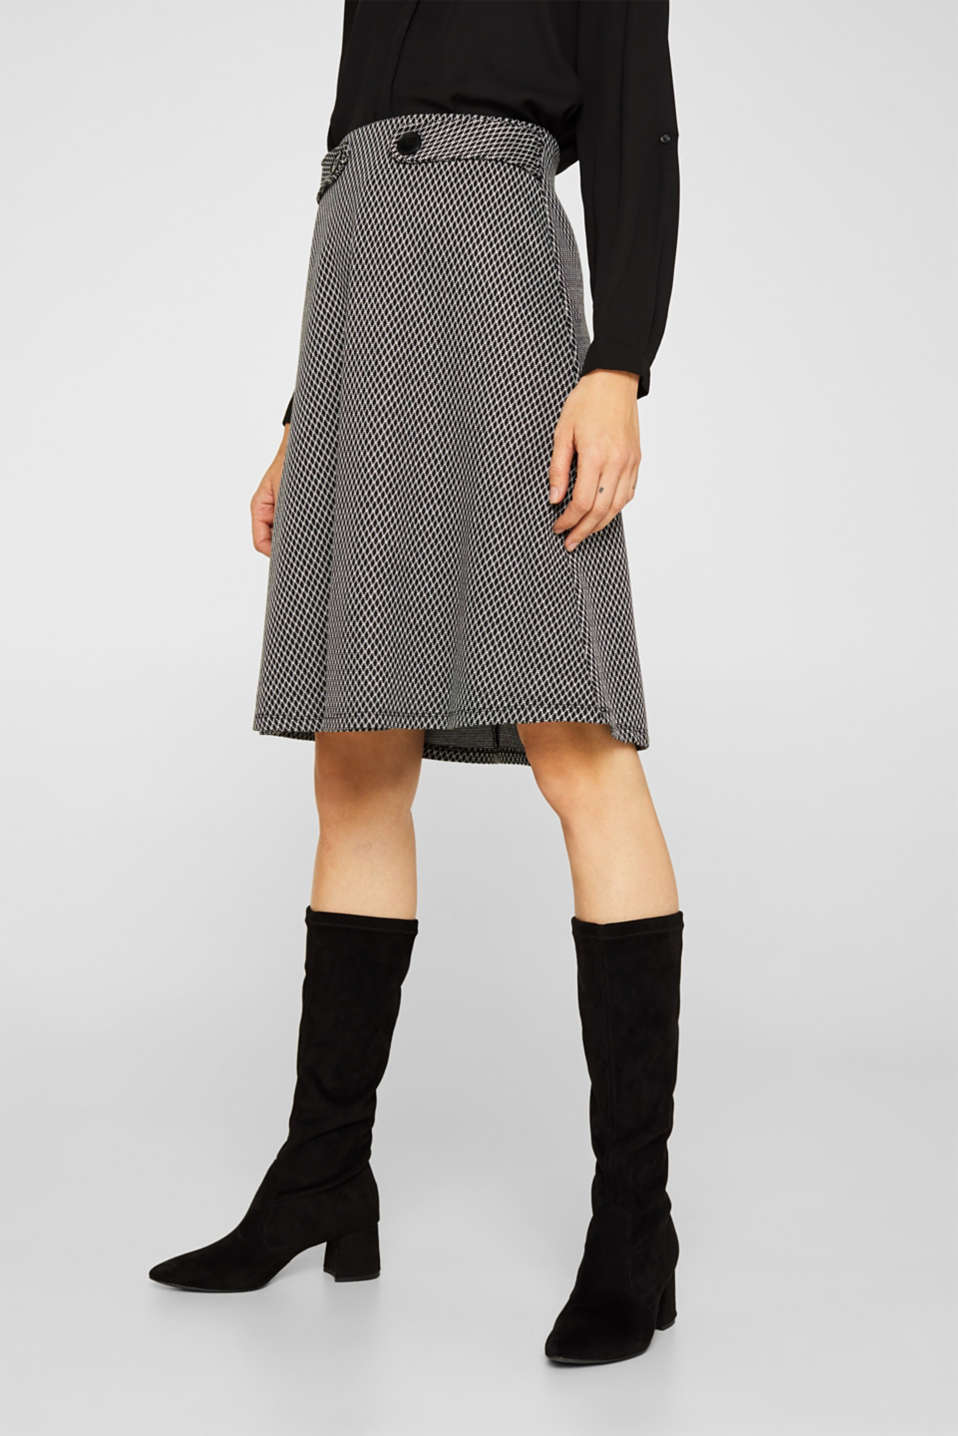 A-line skirt made of patterned jersey, GREY, detail image number 6